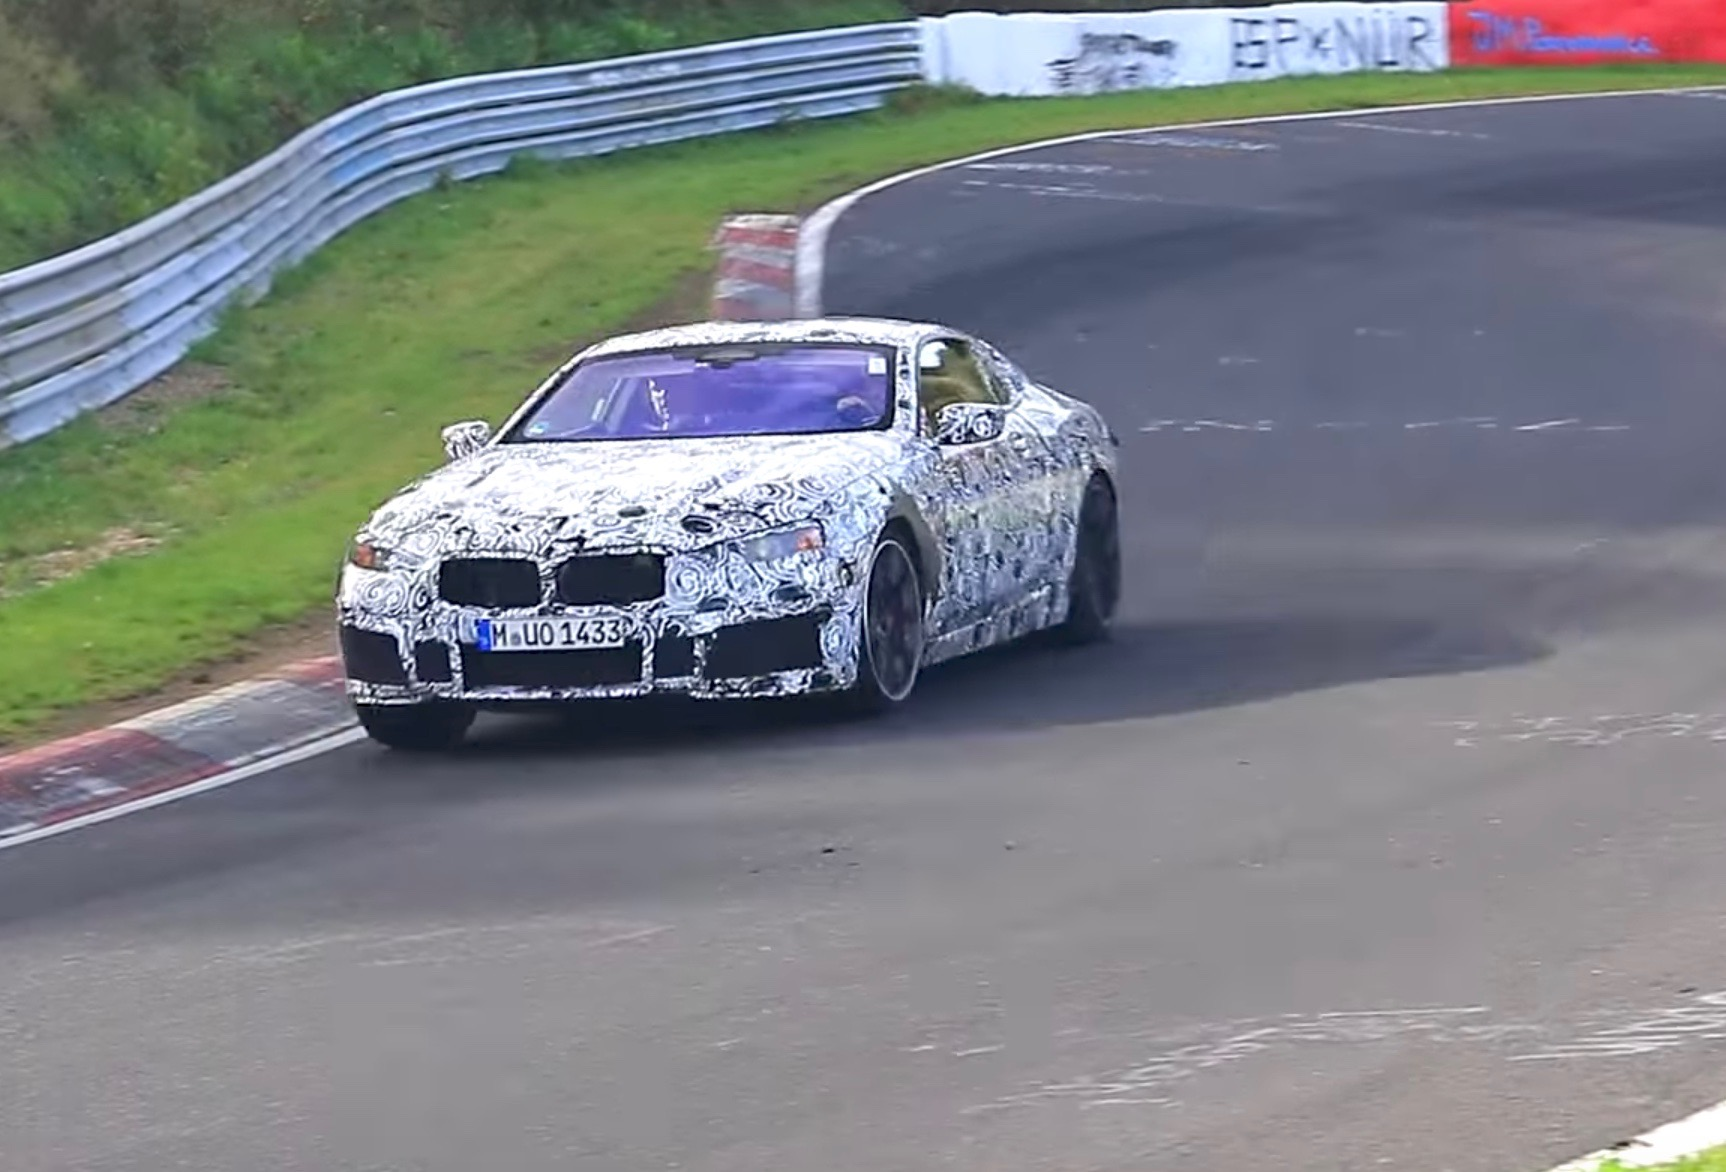 2018 bmw m8 850i spied at the nurburgring video performancedrive. Black Bedroom Furniture Sets. Home Design Ideas